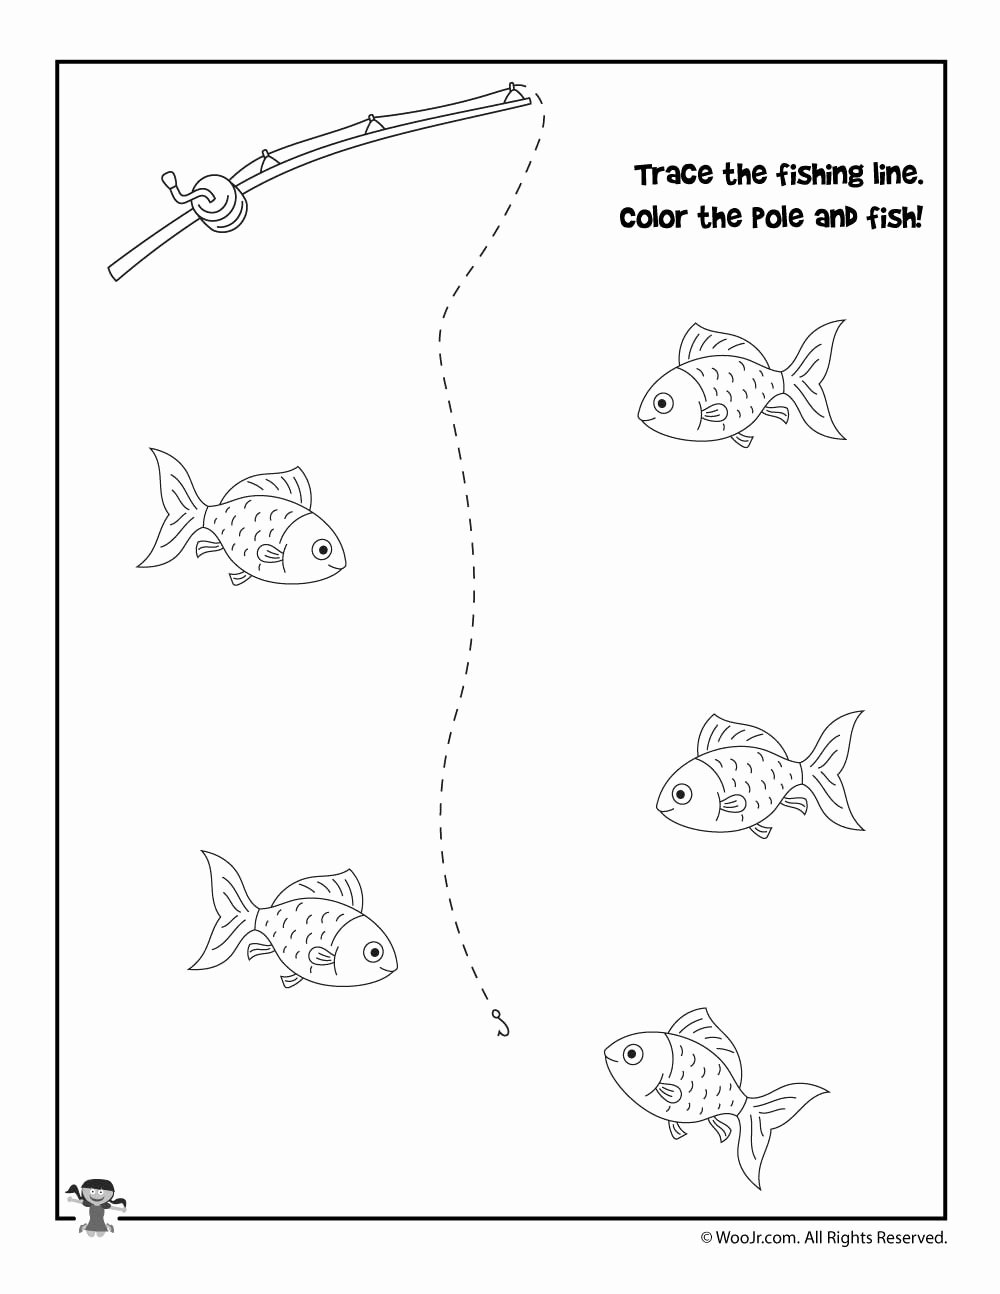 Fish Worksheets for Preschoolers Printable Worksheet Printingactice Worksheets Fish Tracing Worksheet